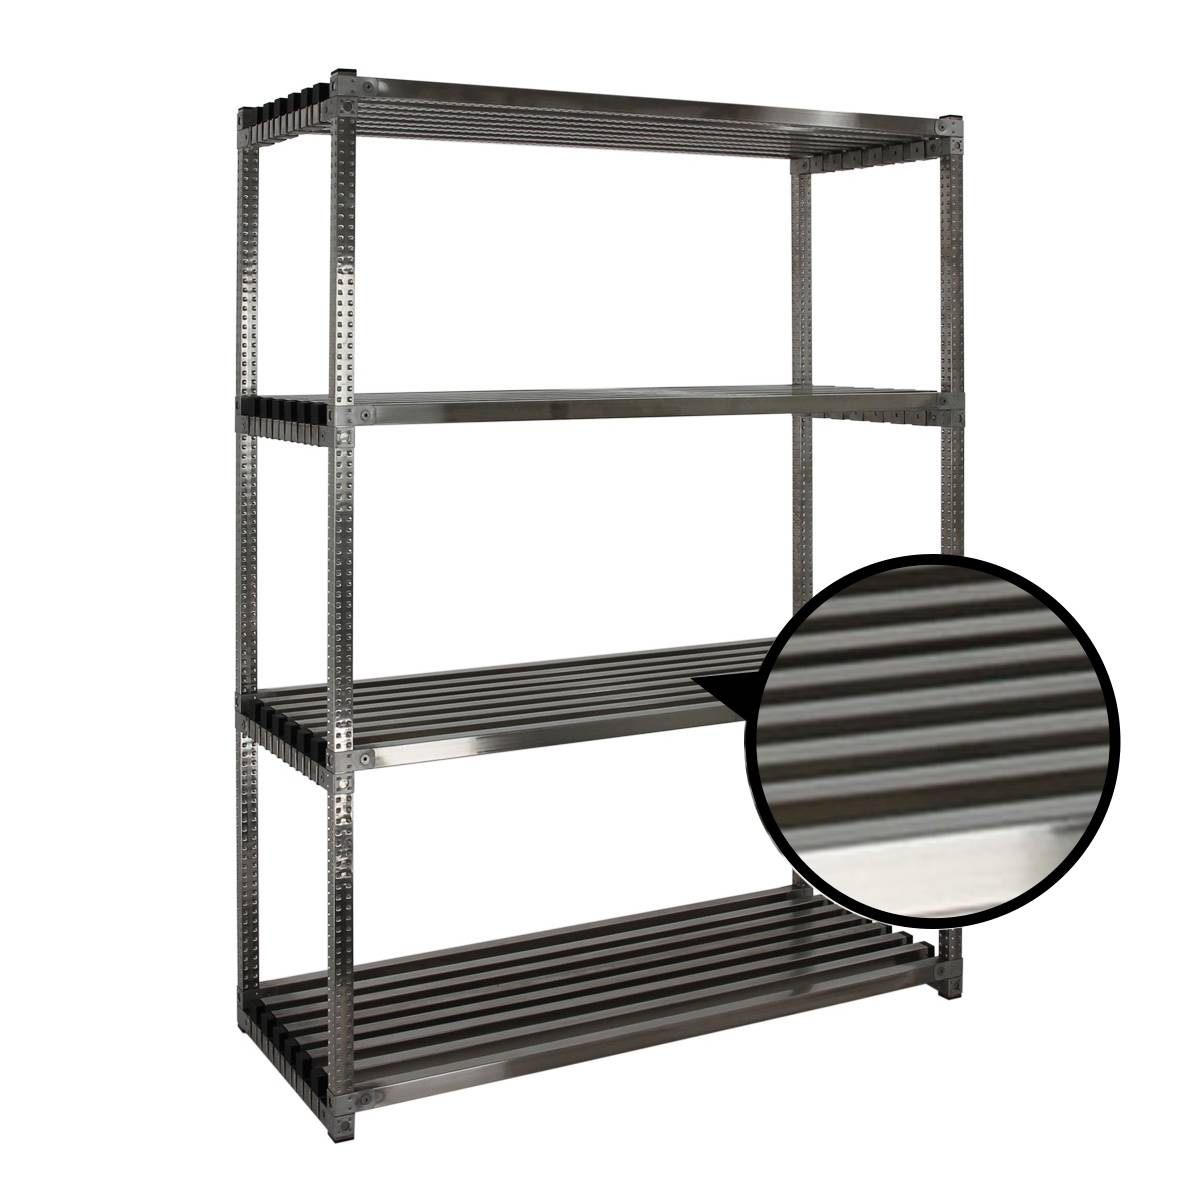 Axess Industries Rayonnage alimentaire inox à tablettes tubulaires   Long. utile 1200 mm   Pro...